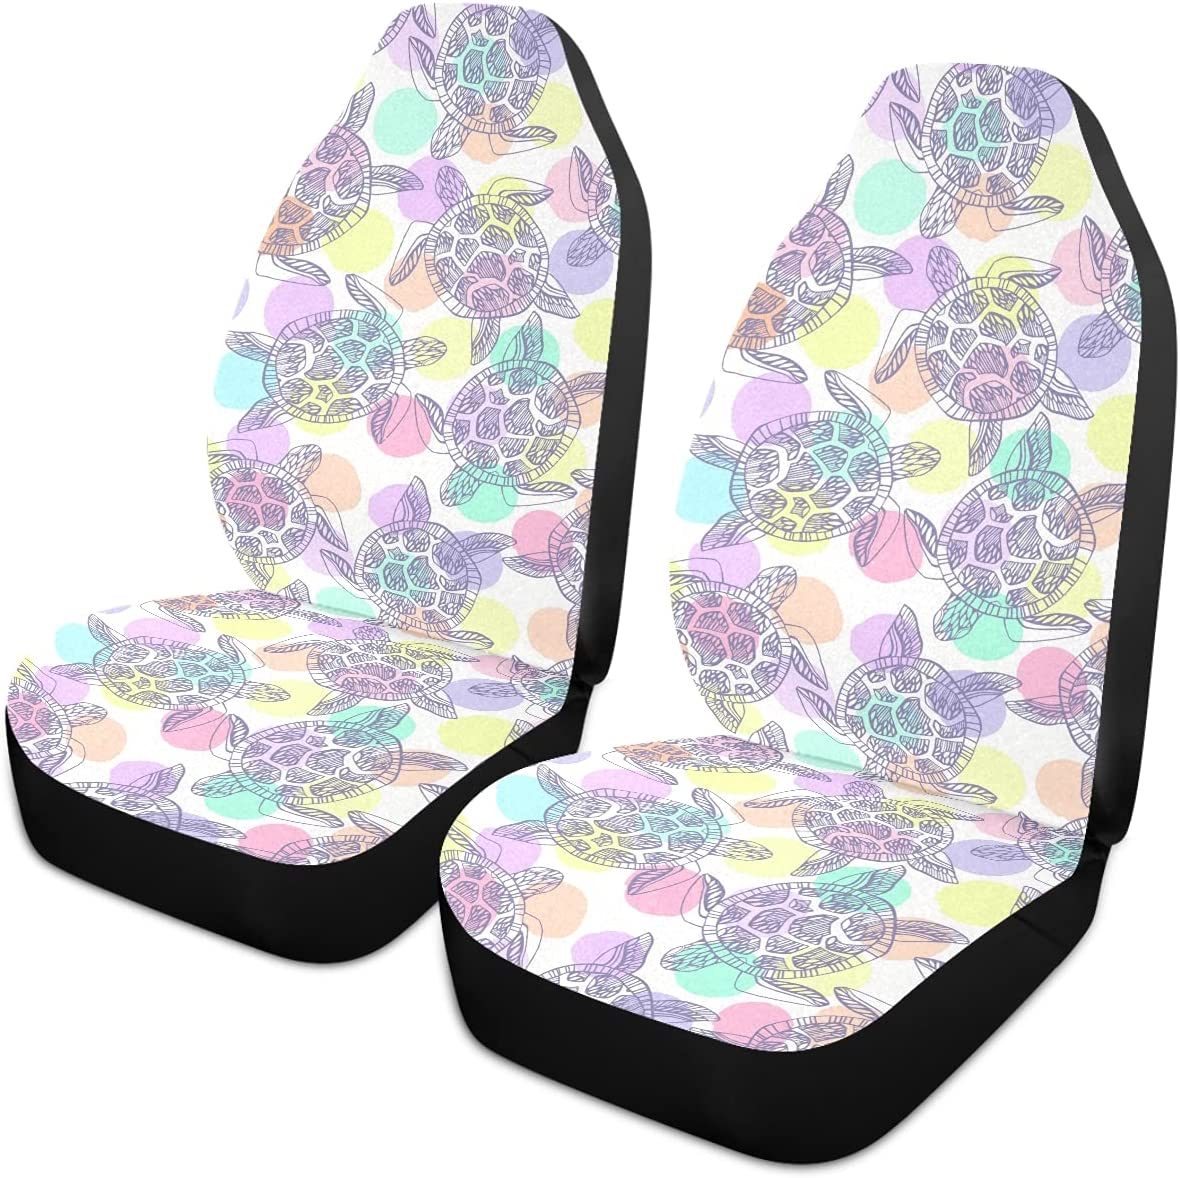 Oarencol Sea Turtle Car Seat Universal Max 64% OFF Polka Dot Sales results No. 1 Colorful Covers